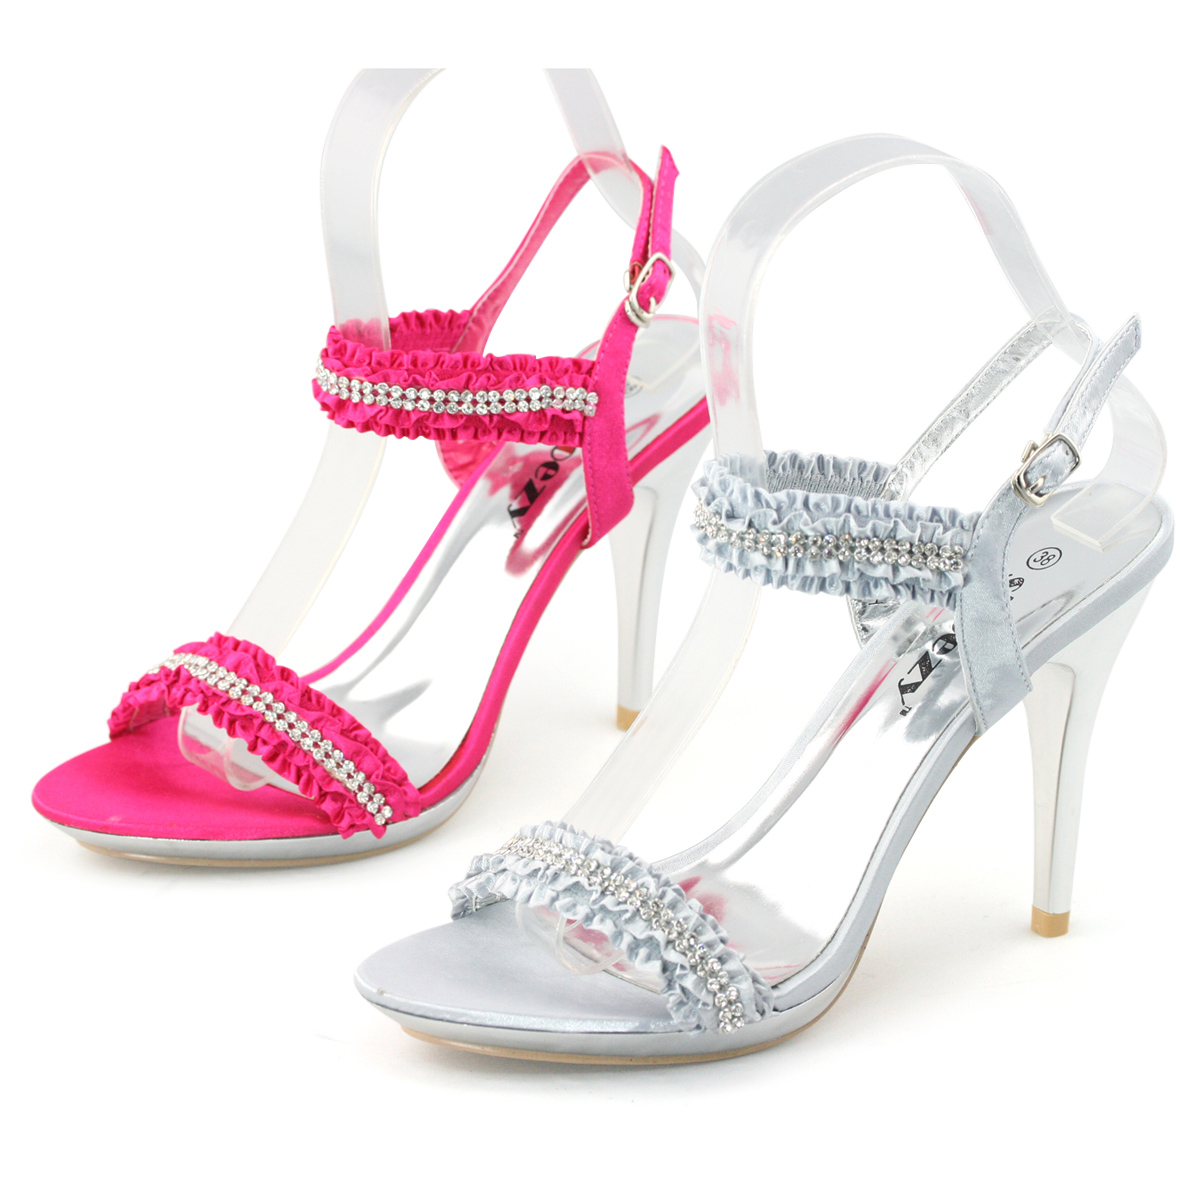 New Ladies diamante high heel ruffle designed sandals evening wedding shoes size